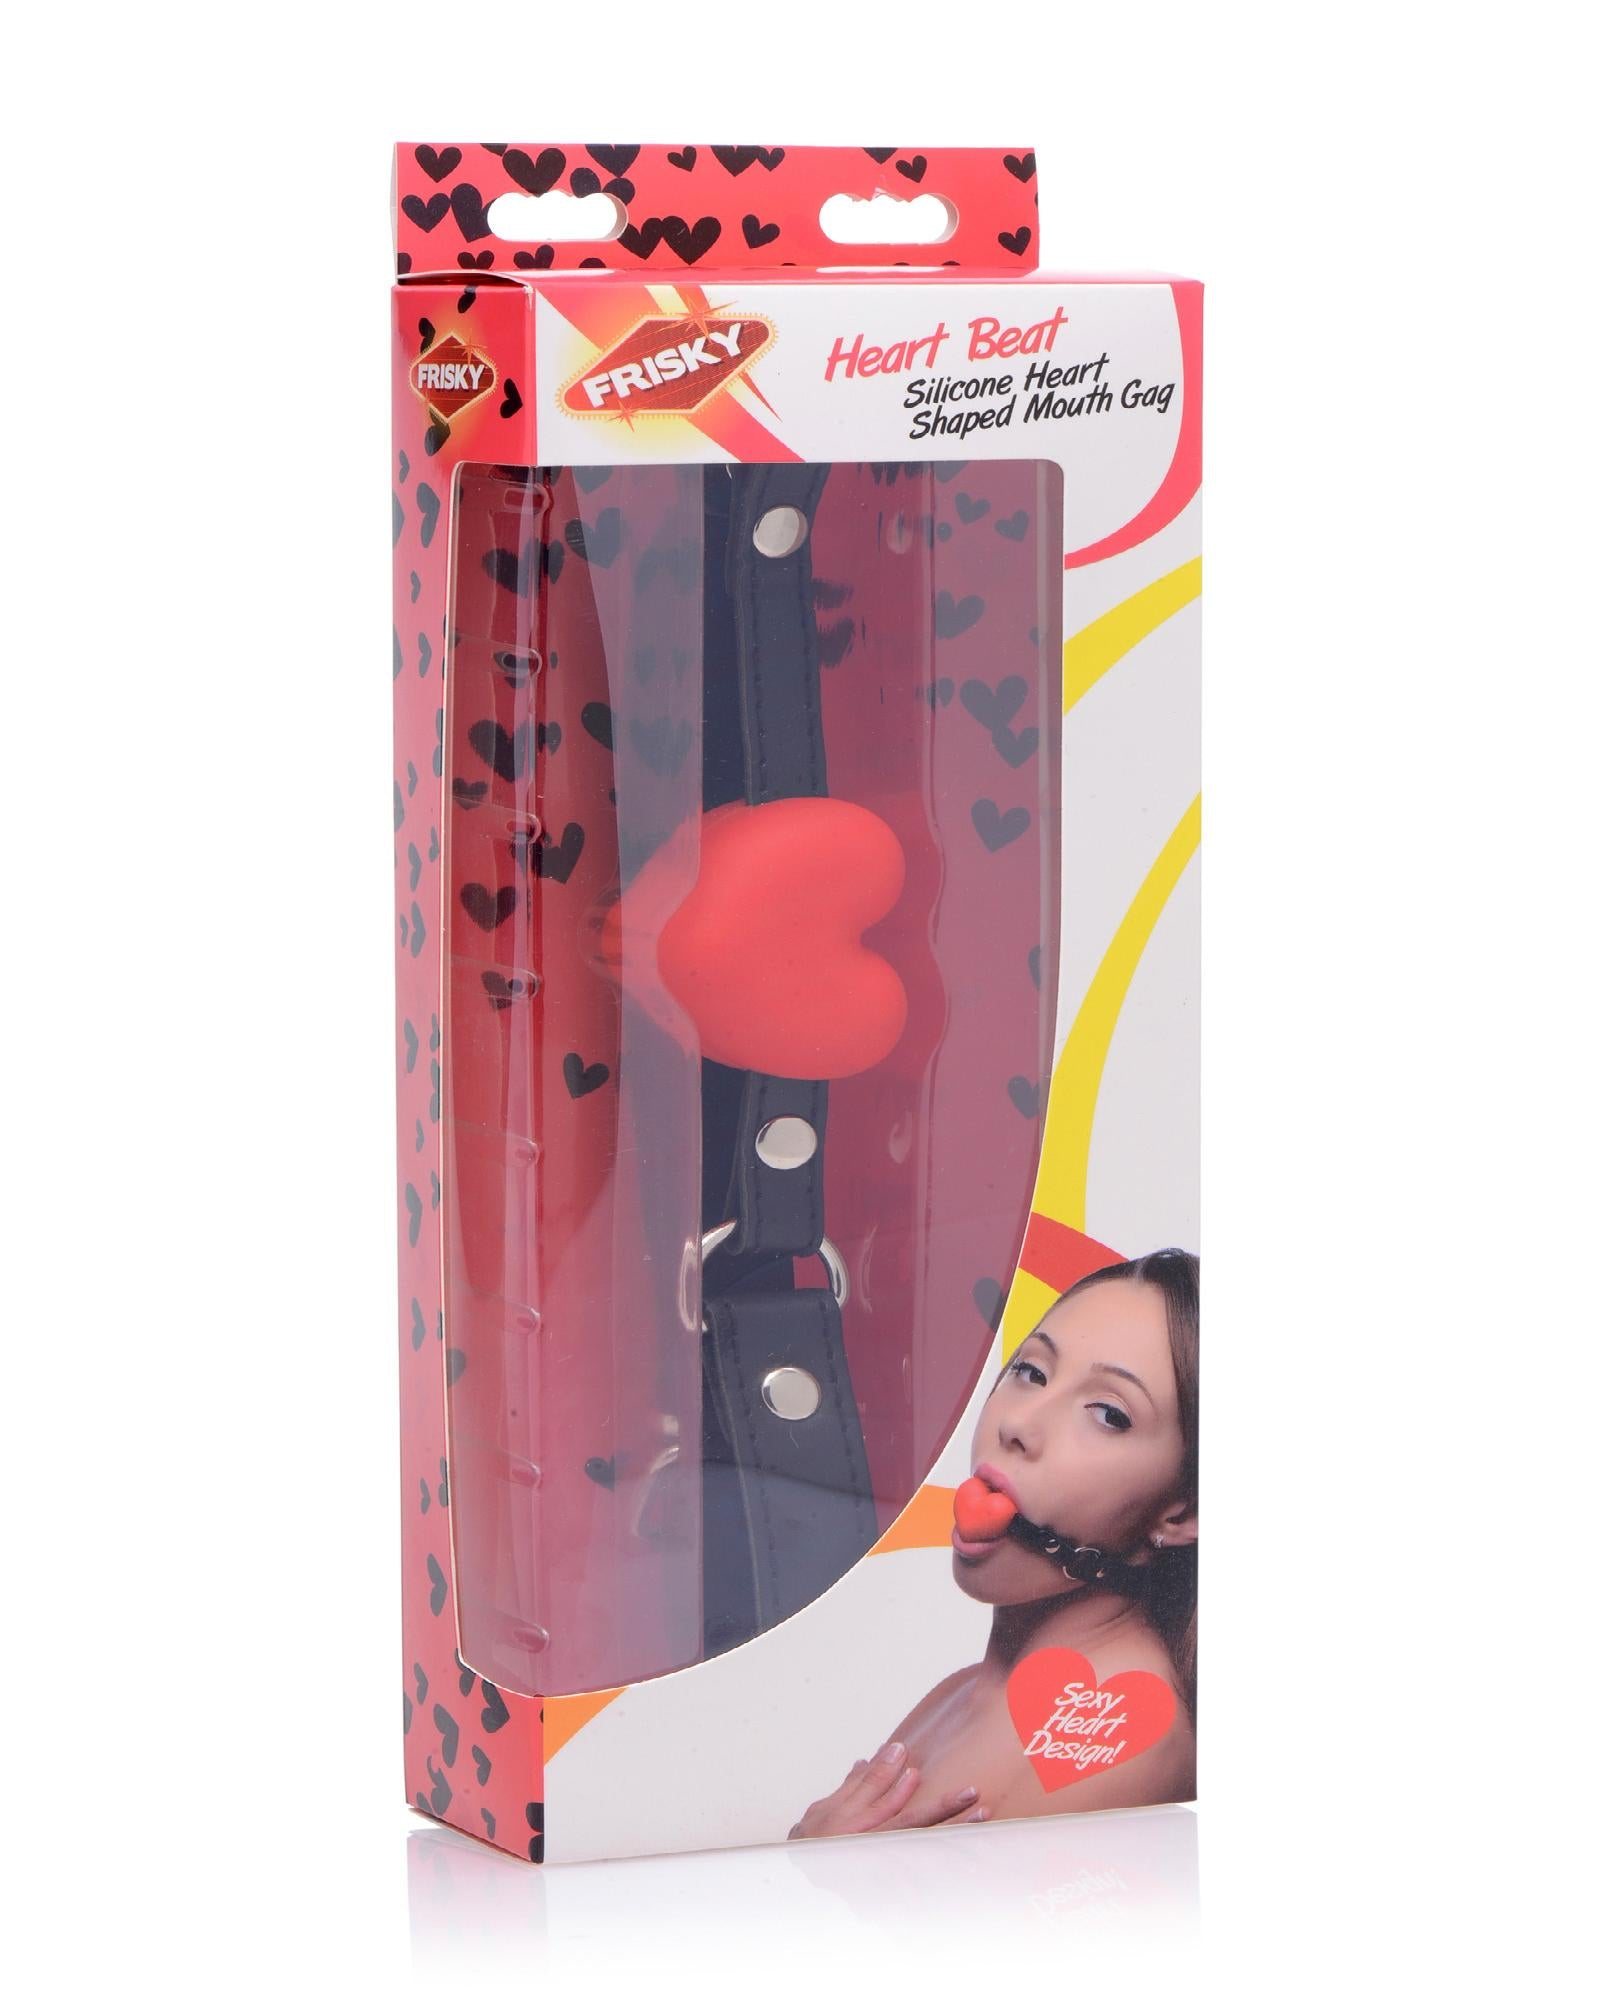 Heart Beat Silicone Heart Shaped Mouth Gag